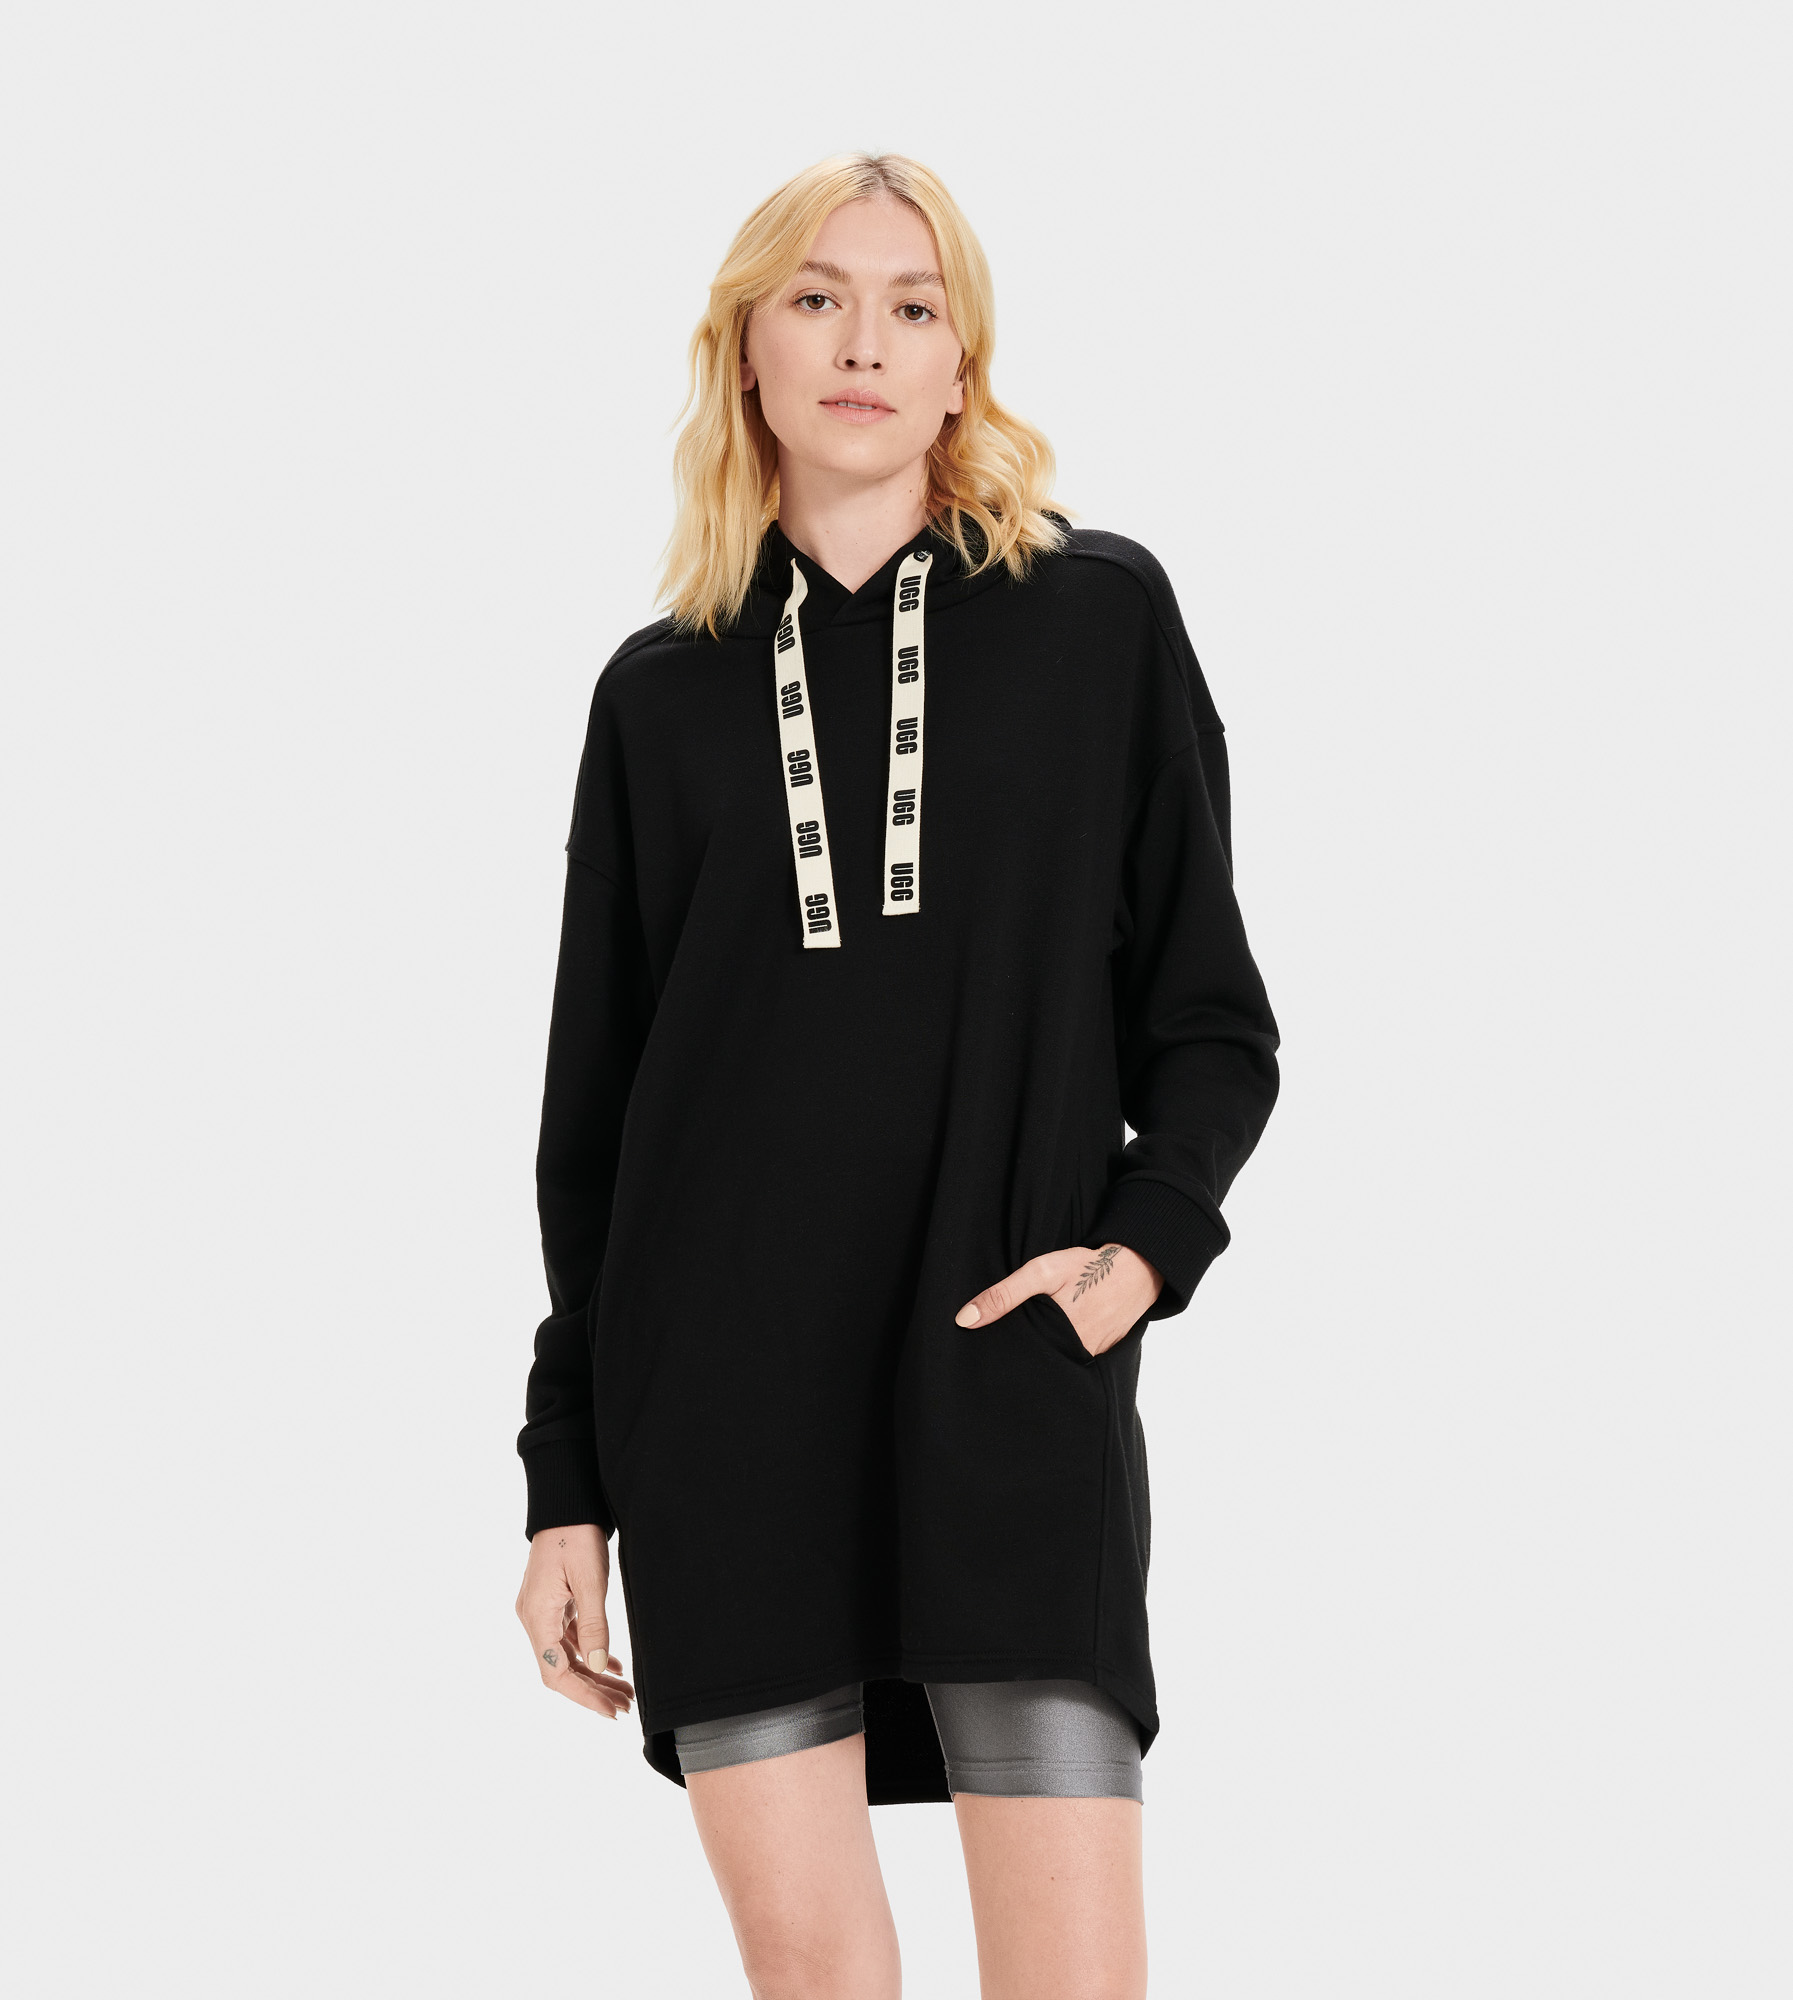 UGG Women's Lucille Hoodie Dress Cotton Blend Hoodies & Sweatshirts in Black, Size XS Made from soft french terry, this pullover hoodie dress features ribbed cuffs and side pockets, striking the perfect balance between cool and casual. Wear yours with platform sneakers for a fun, sporty look. Brushed French Terry - 80% Polyester/20% Cotton. Pullover hoodie dress. Ribbed cuff. Side pockets. Cotton Drawcords with printed UGG logo on one side. 33 7/8  Center back length [Size S]. UGG Women's Lucille Hoodie Dress Cotton Blend Hoodies & Sweatshirts in Black, Size XS